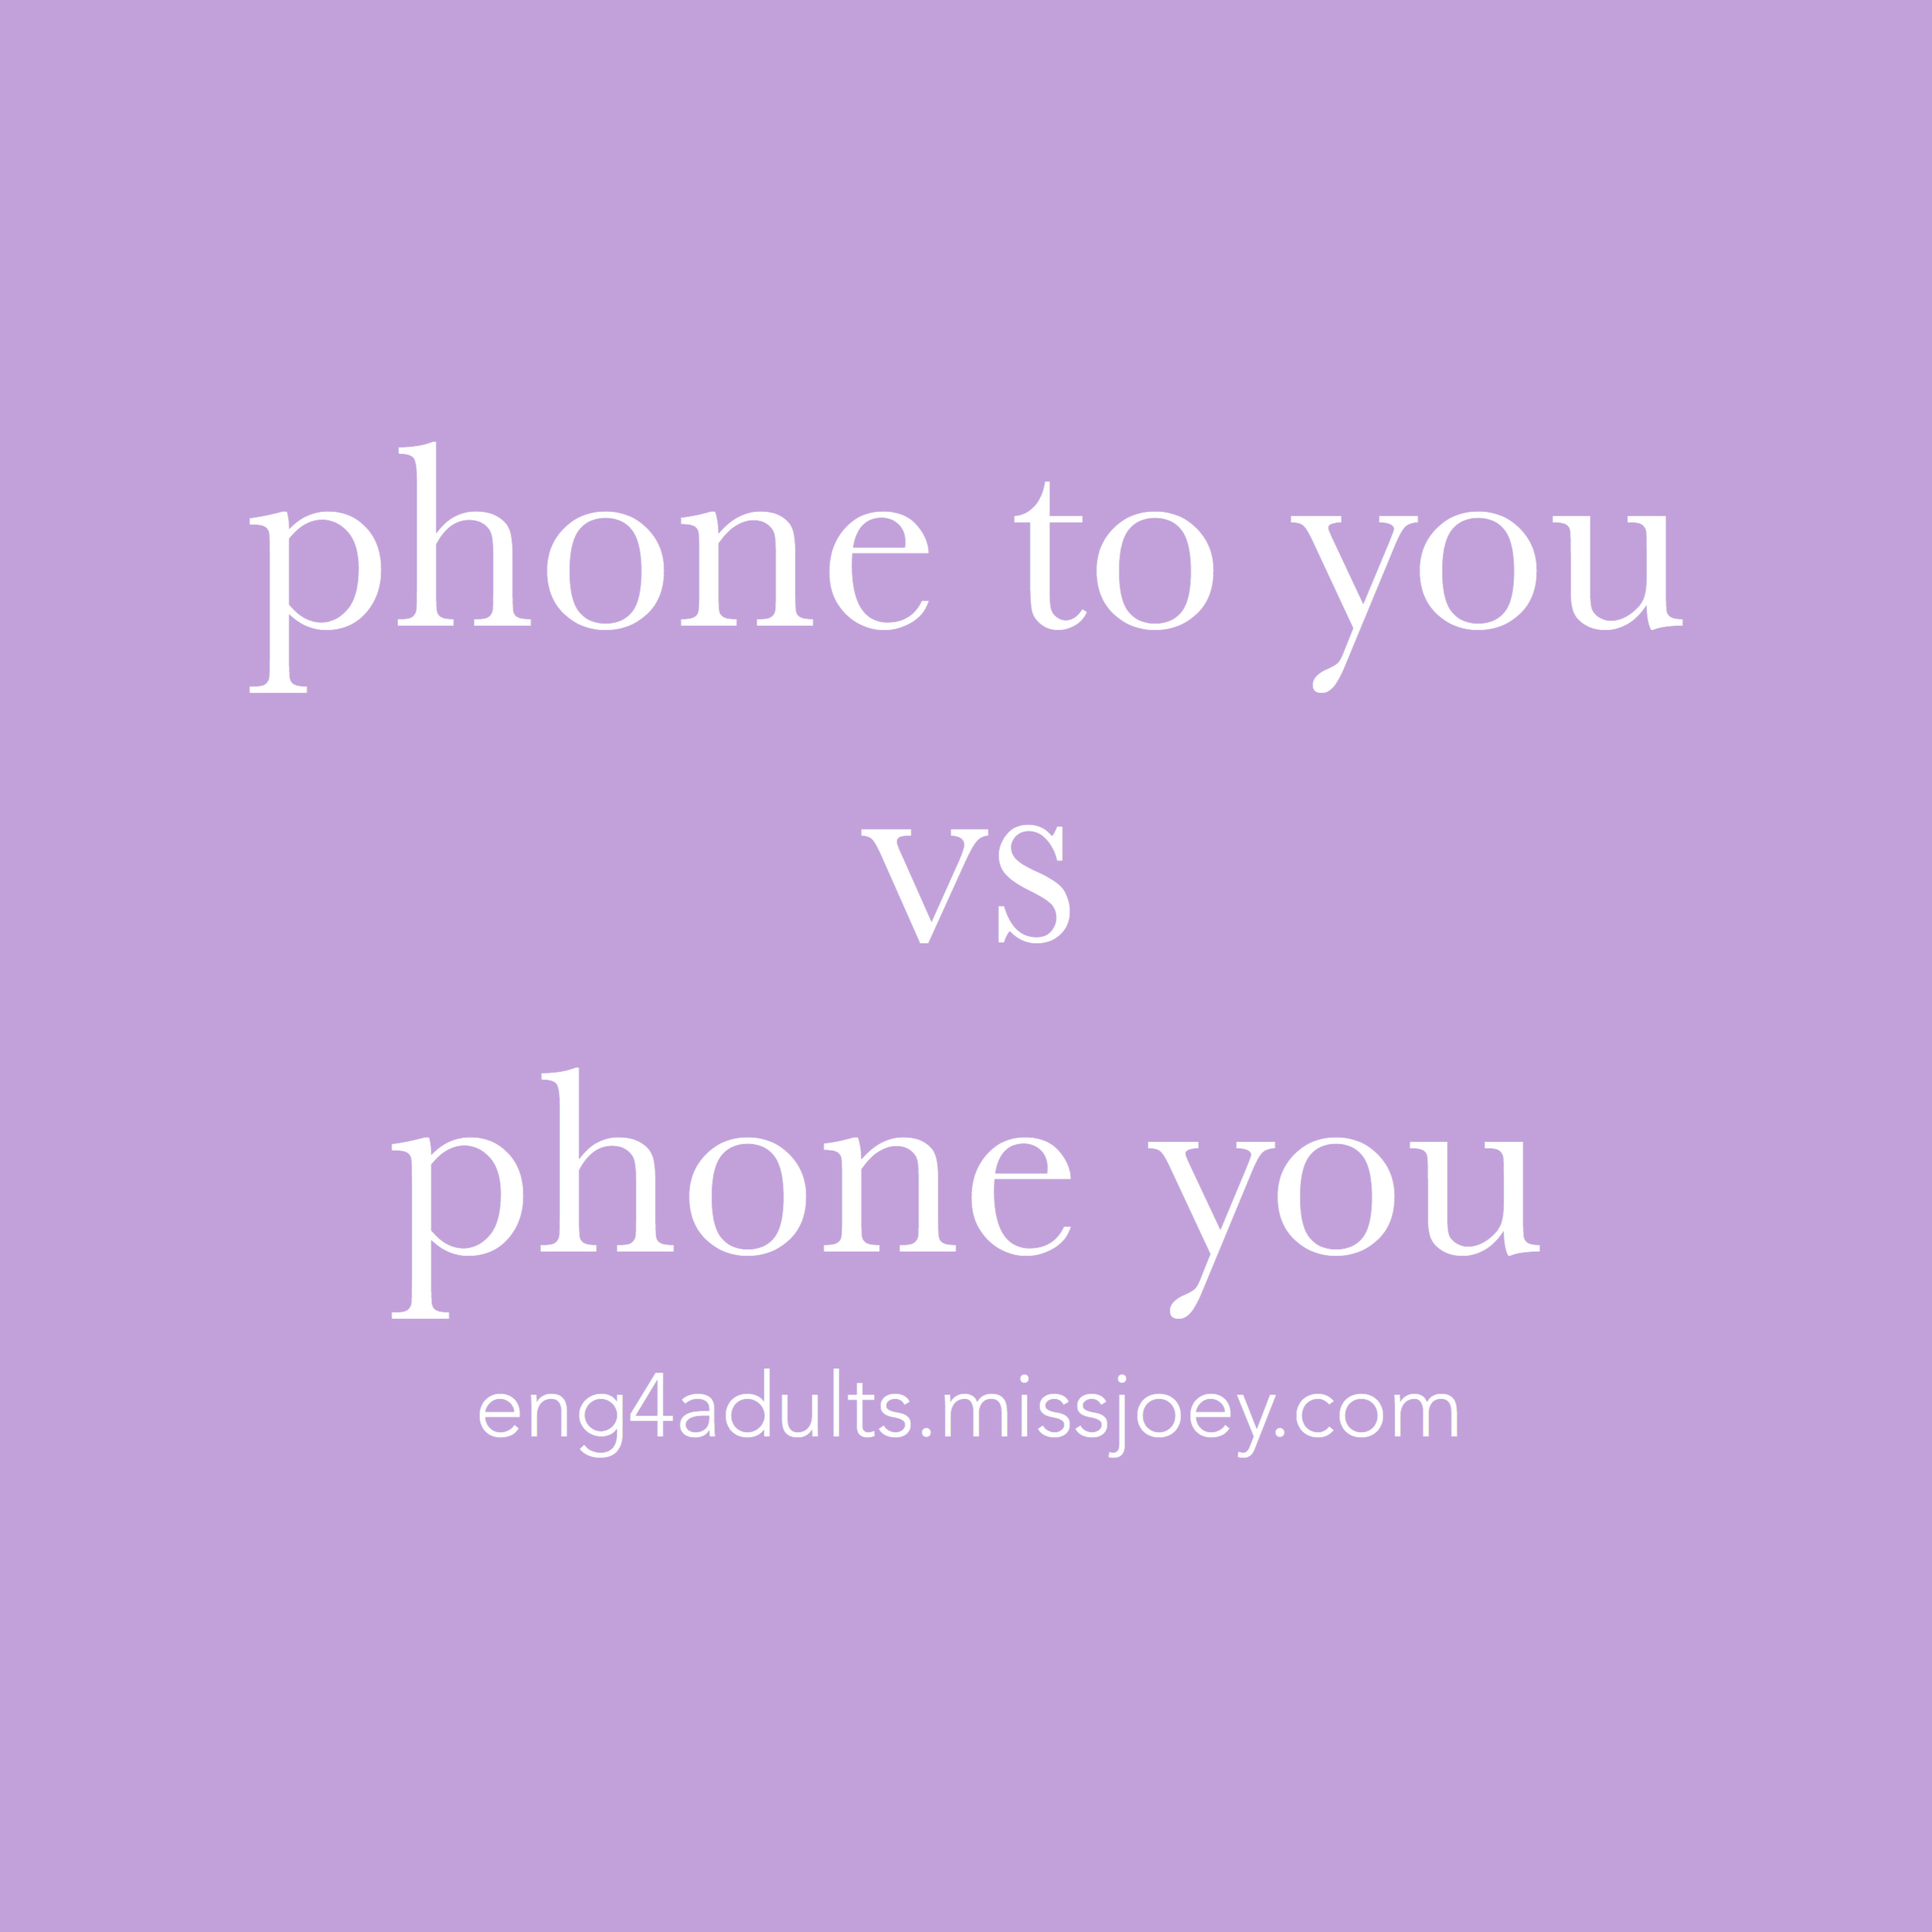 每日一字:phone to you vs phone you